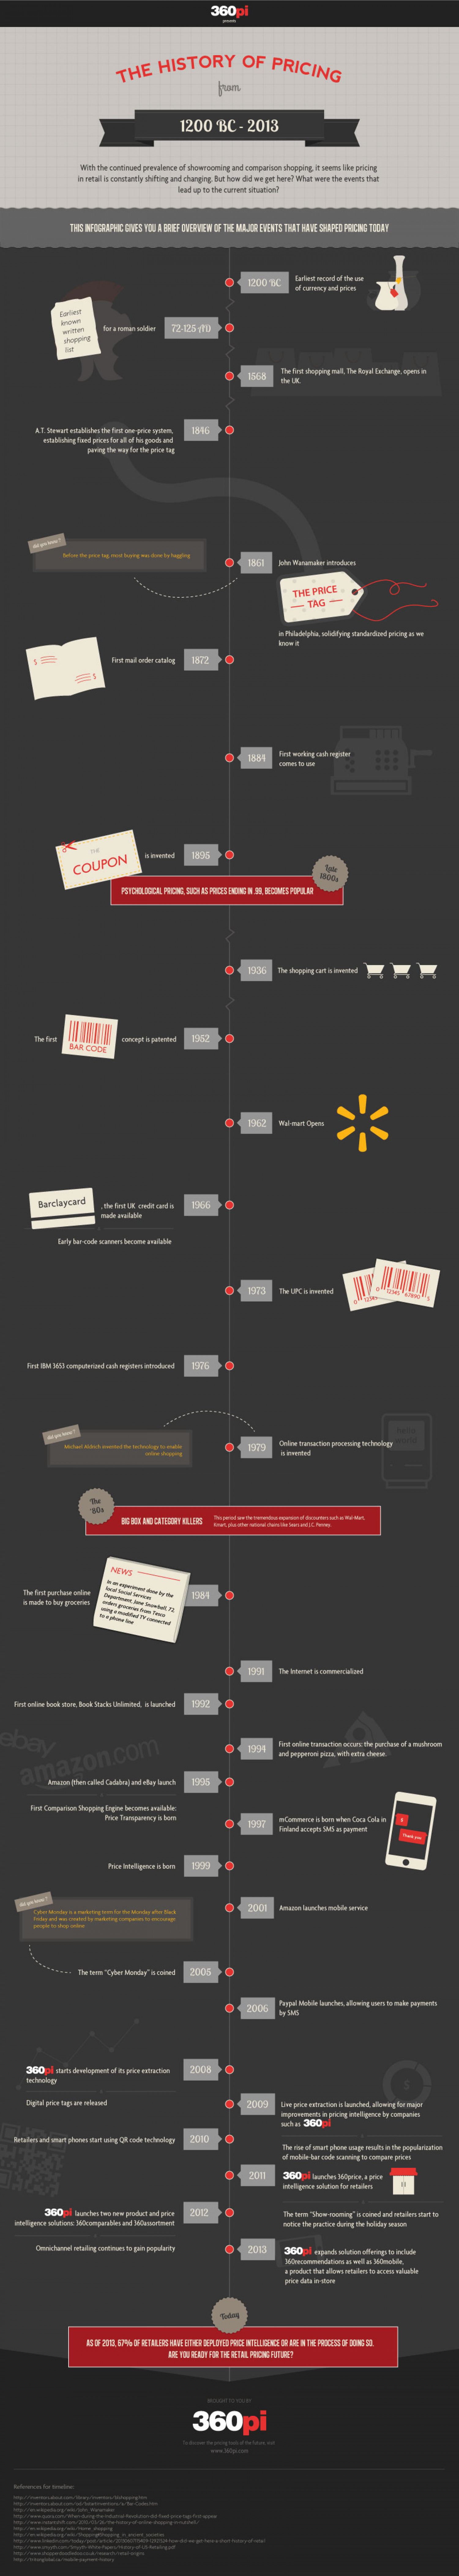 The History of Pricing Infographic